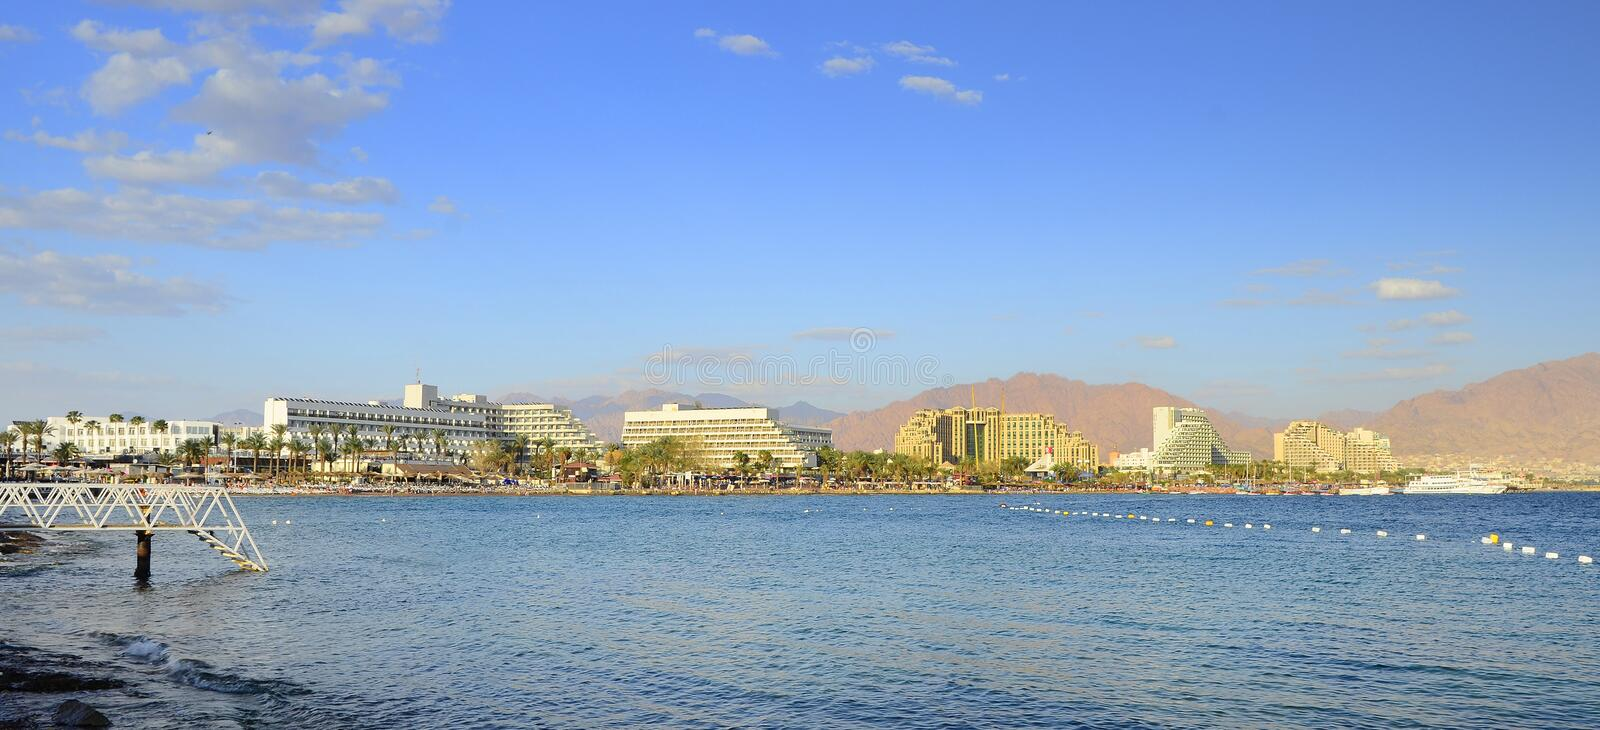 EILAT, ISRAEL - APRIL 11, 2011. Central public beach in Eilat - famous resort city in Israel royalty free stock image